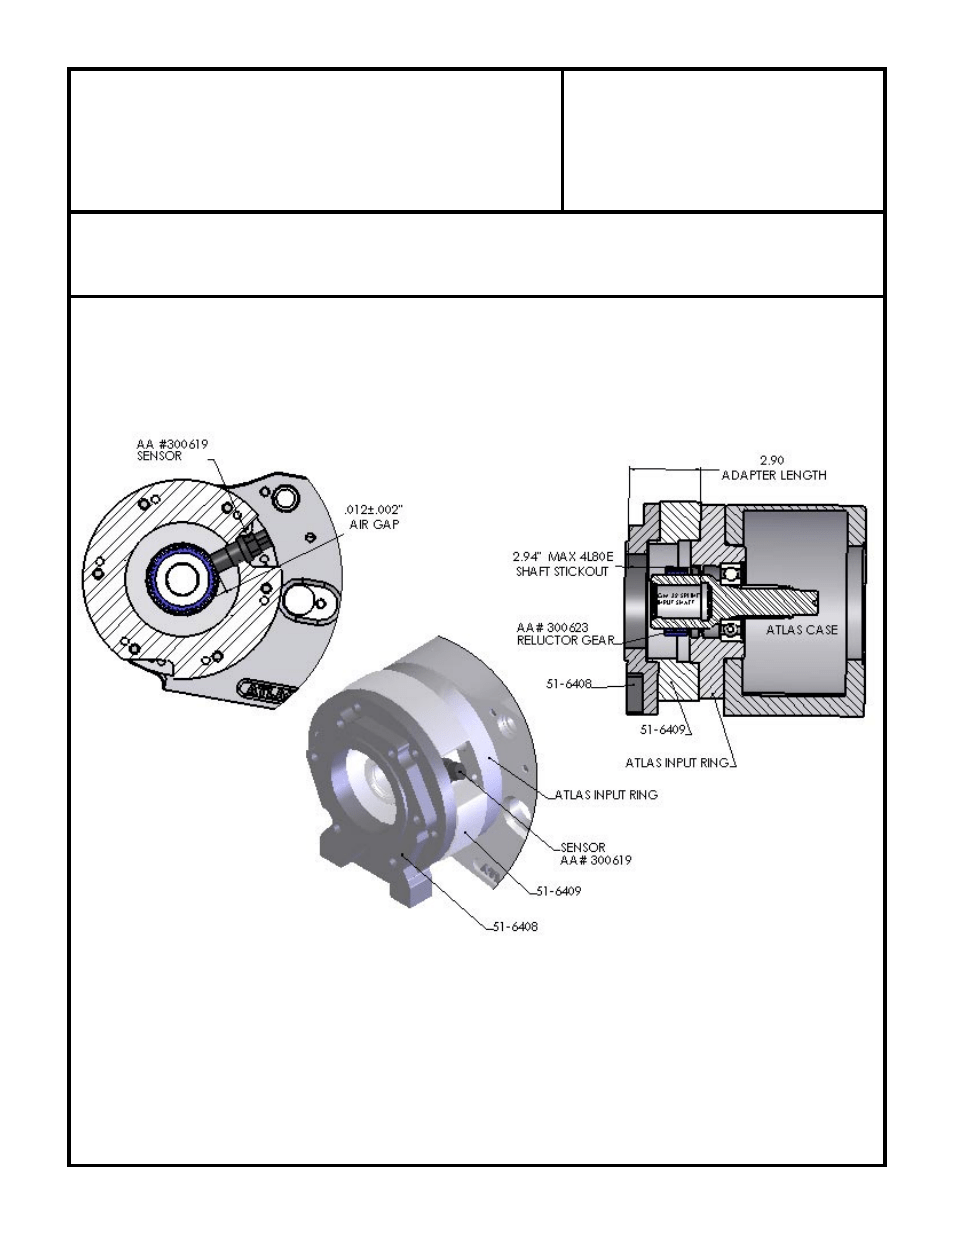 medium resolution of gm 4l80e automatic to atlas 2 speed transfer case advance adapters 50 6409 user manual page 2 2